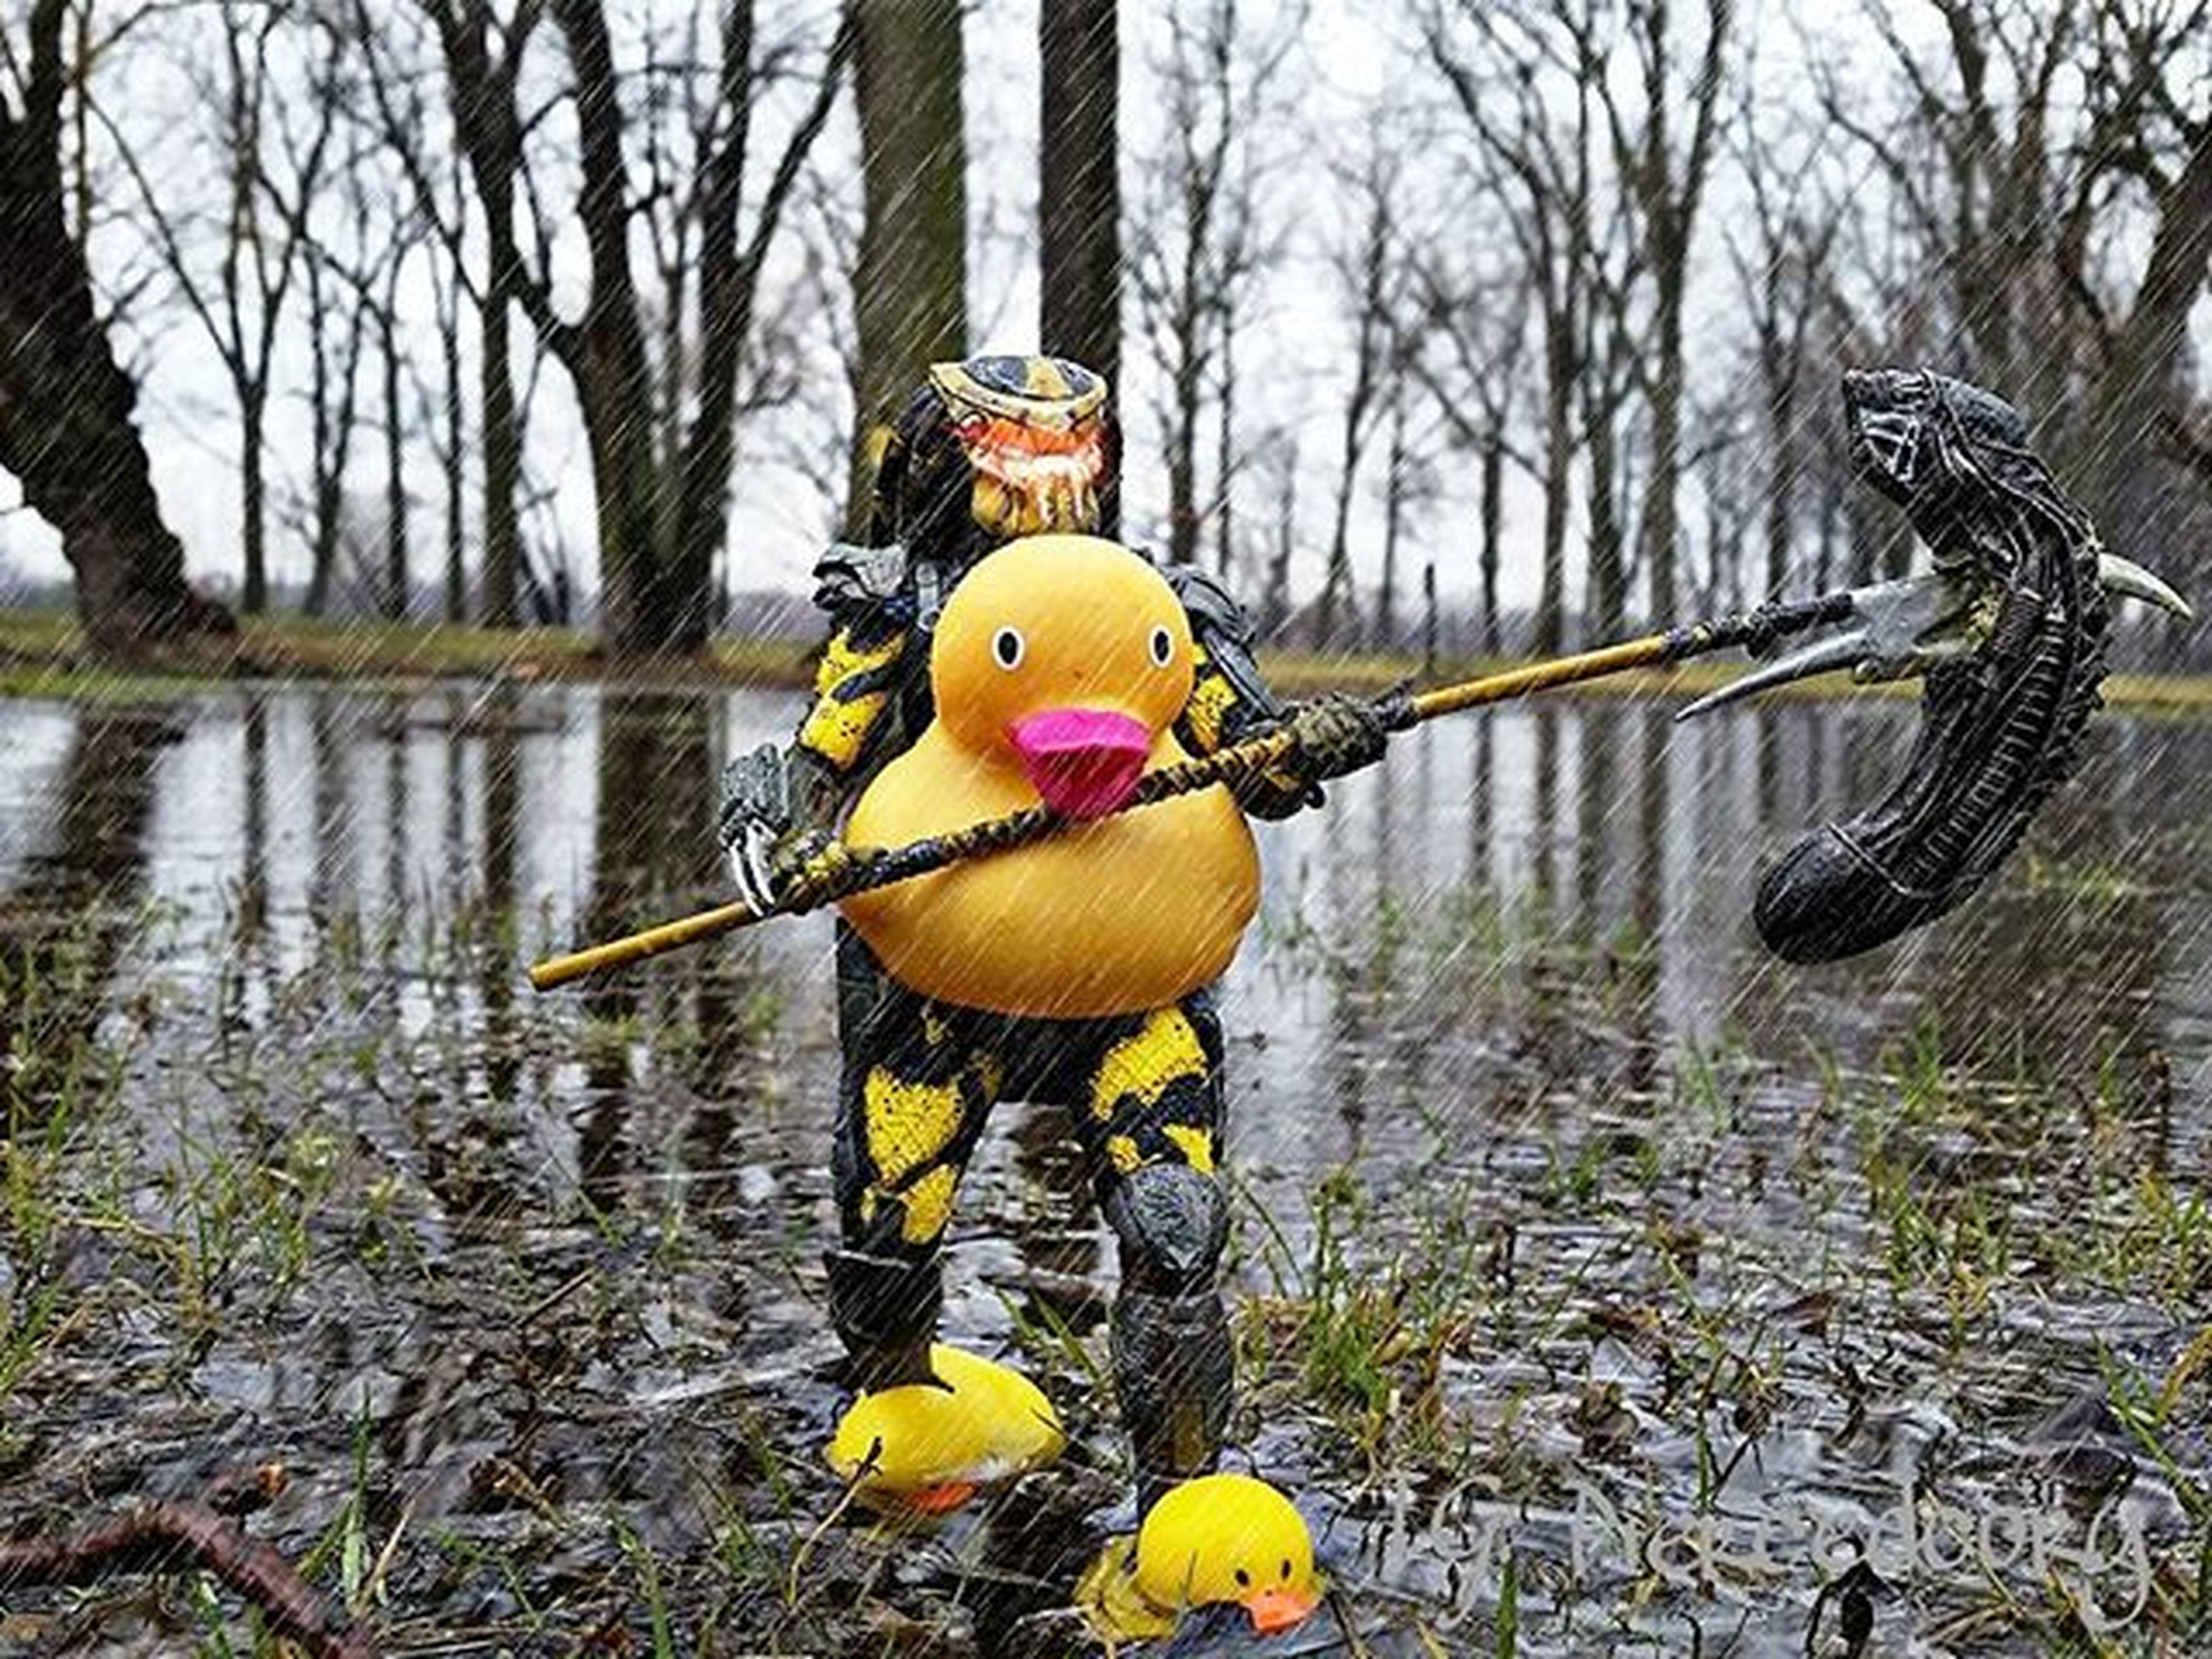 tree, water, lake, yellow, toy, bare tree, branch, childhood, river, reflection, tree trunk, nature, animal representation, tranquility, day, outdoors, transportation, duck, no people, riverbank